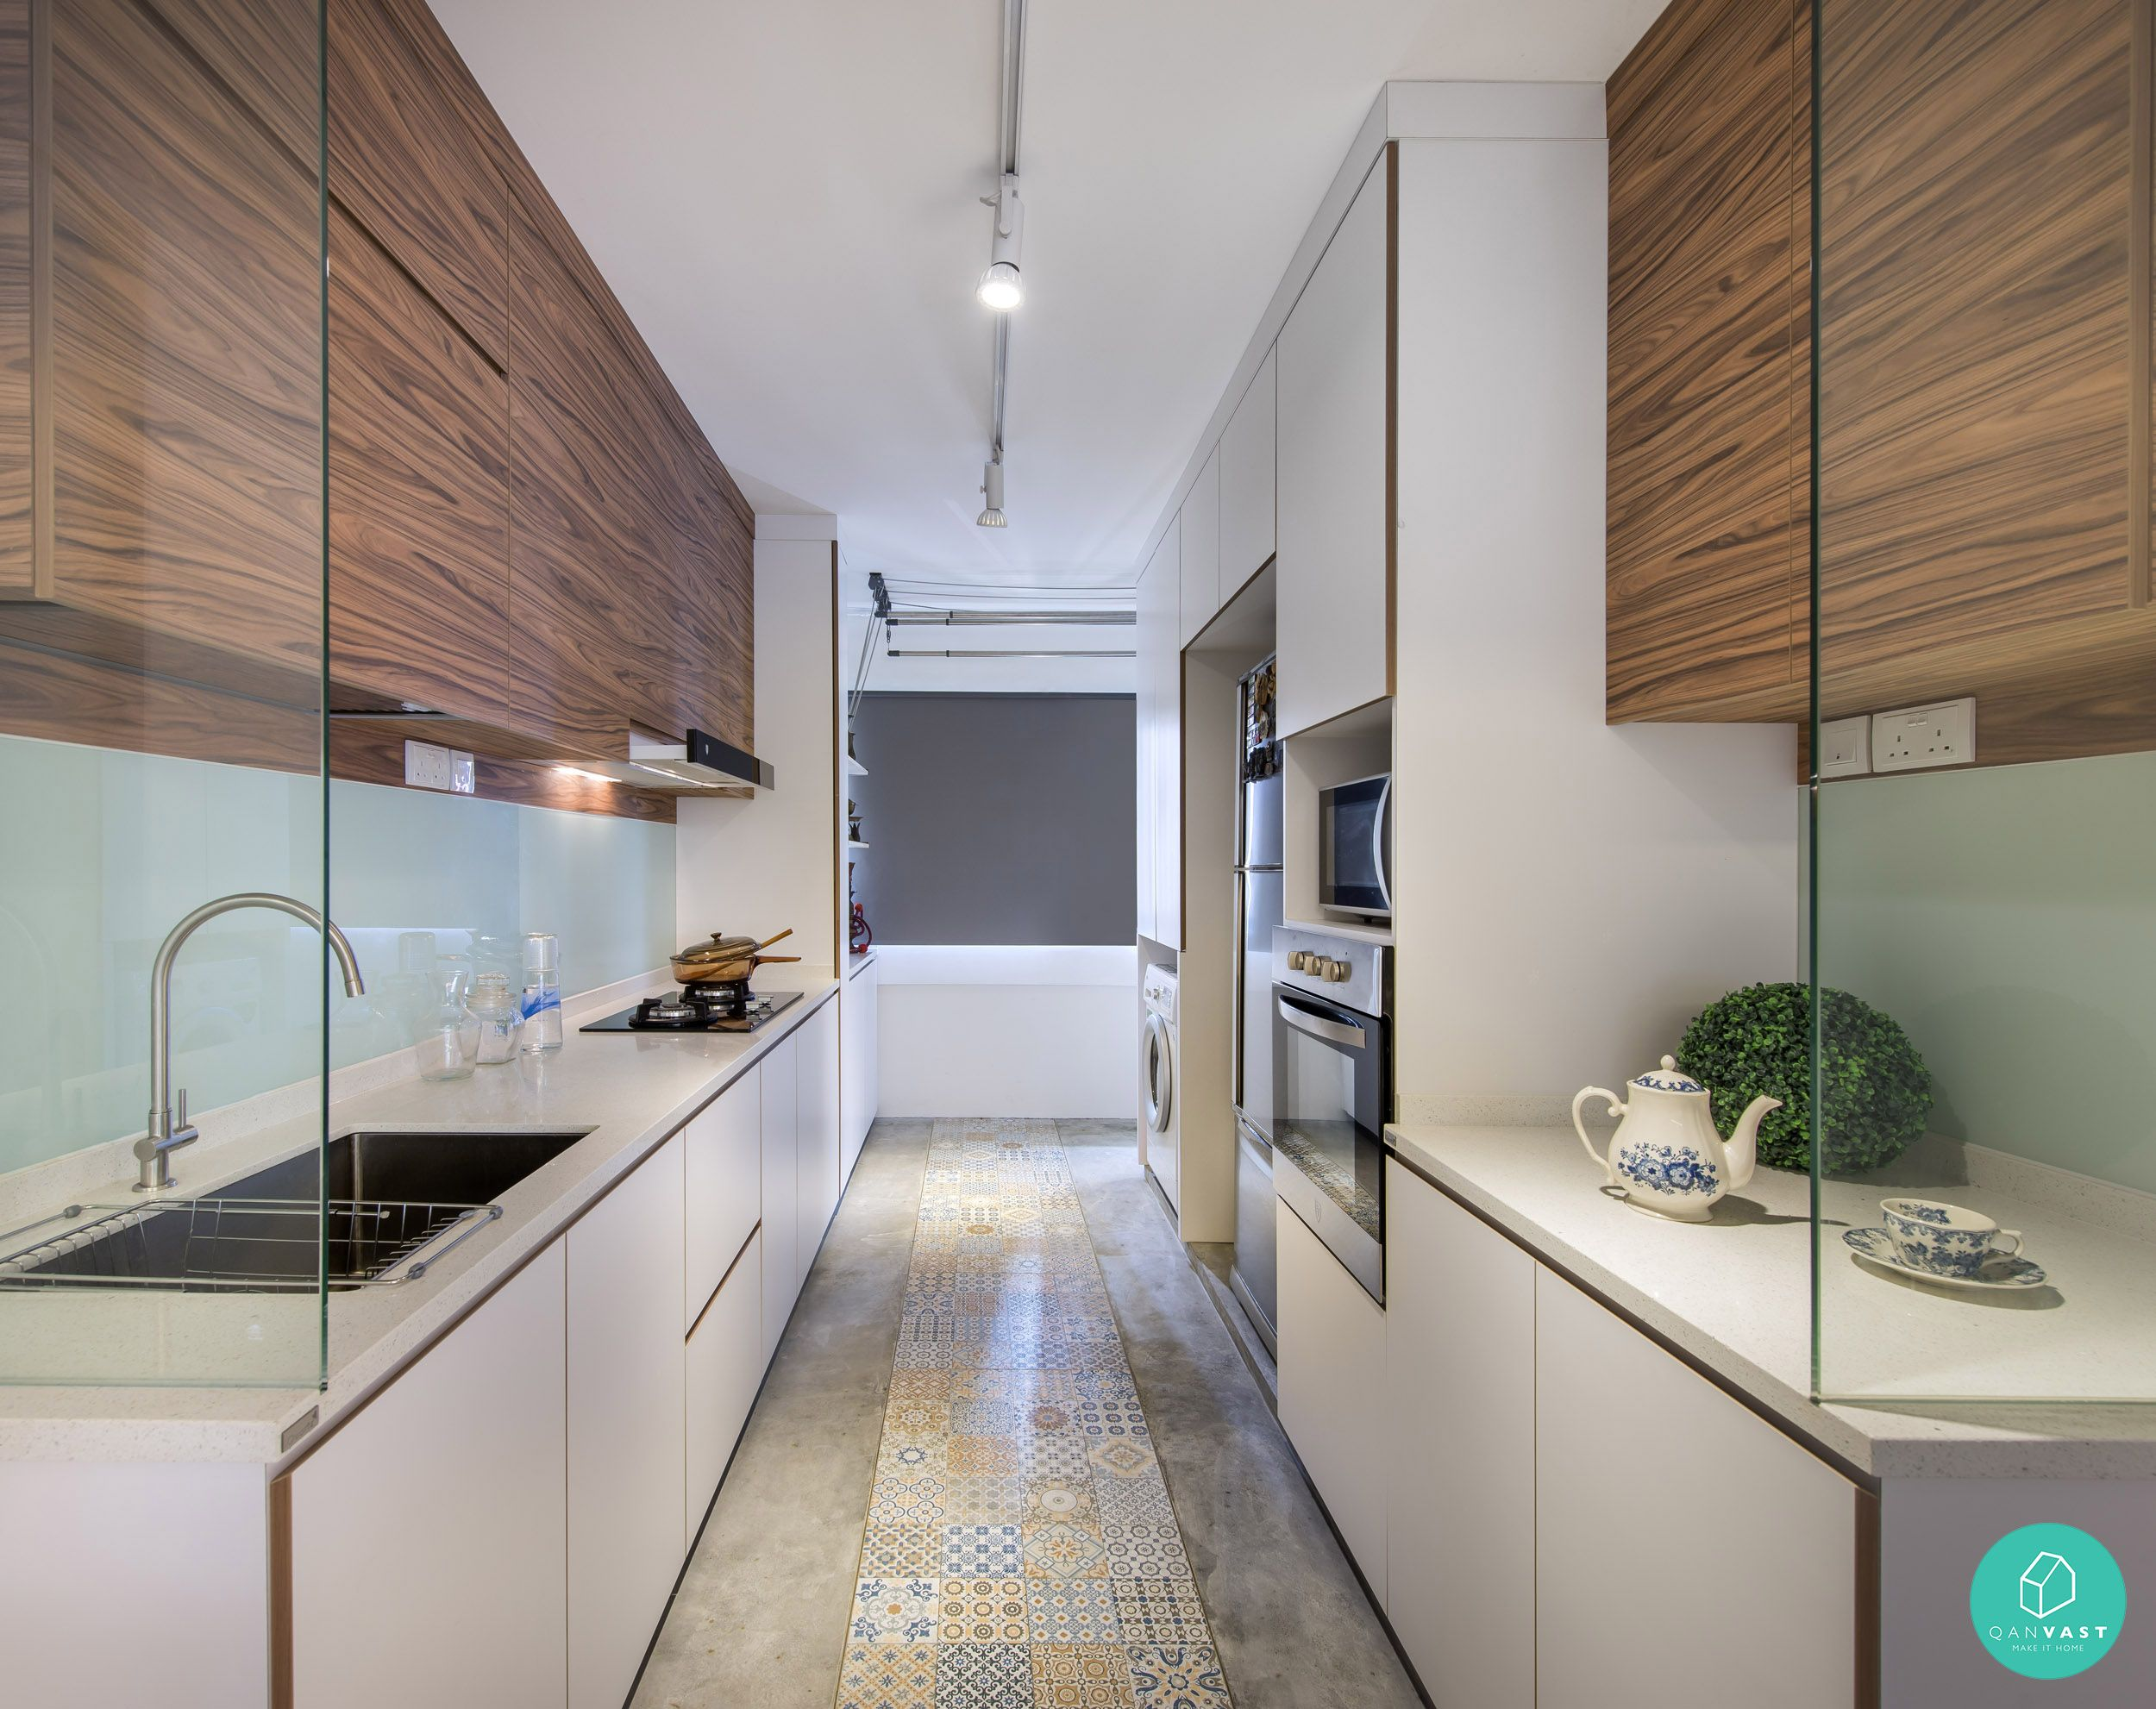 Kitchen Island Hdb Flat scandustrial theme - 6 homes that achieved this look | kitchens